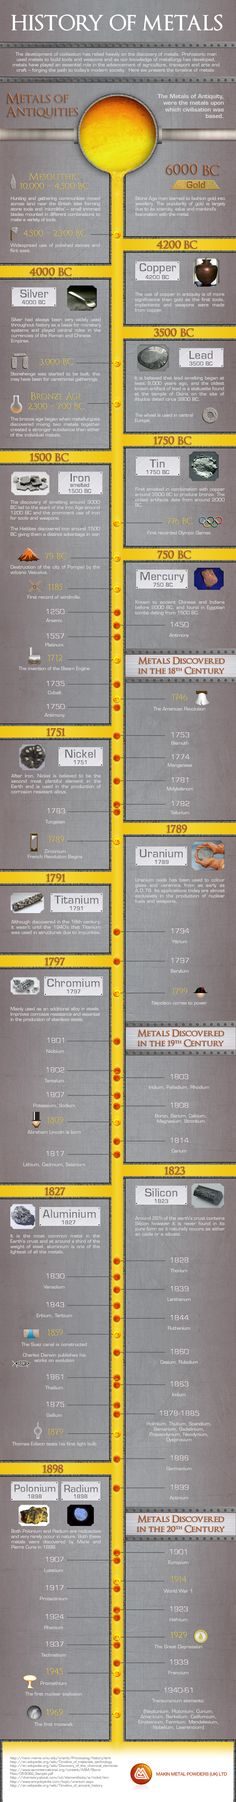 A Brief Visual History Of Metals | October 10, 2014, Tyler Durden, Zero Hedge: